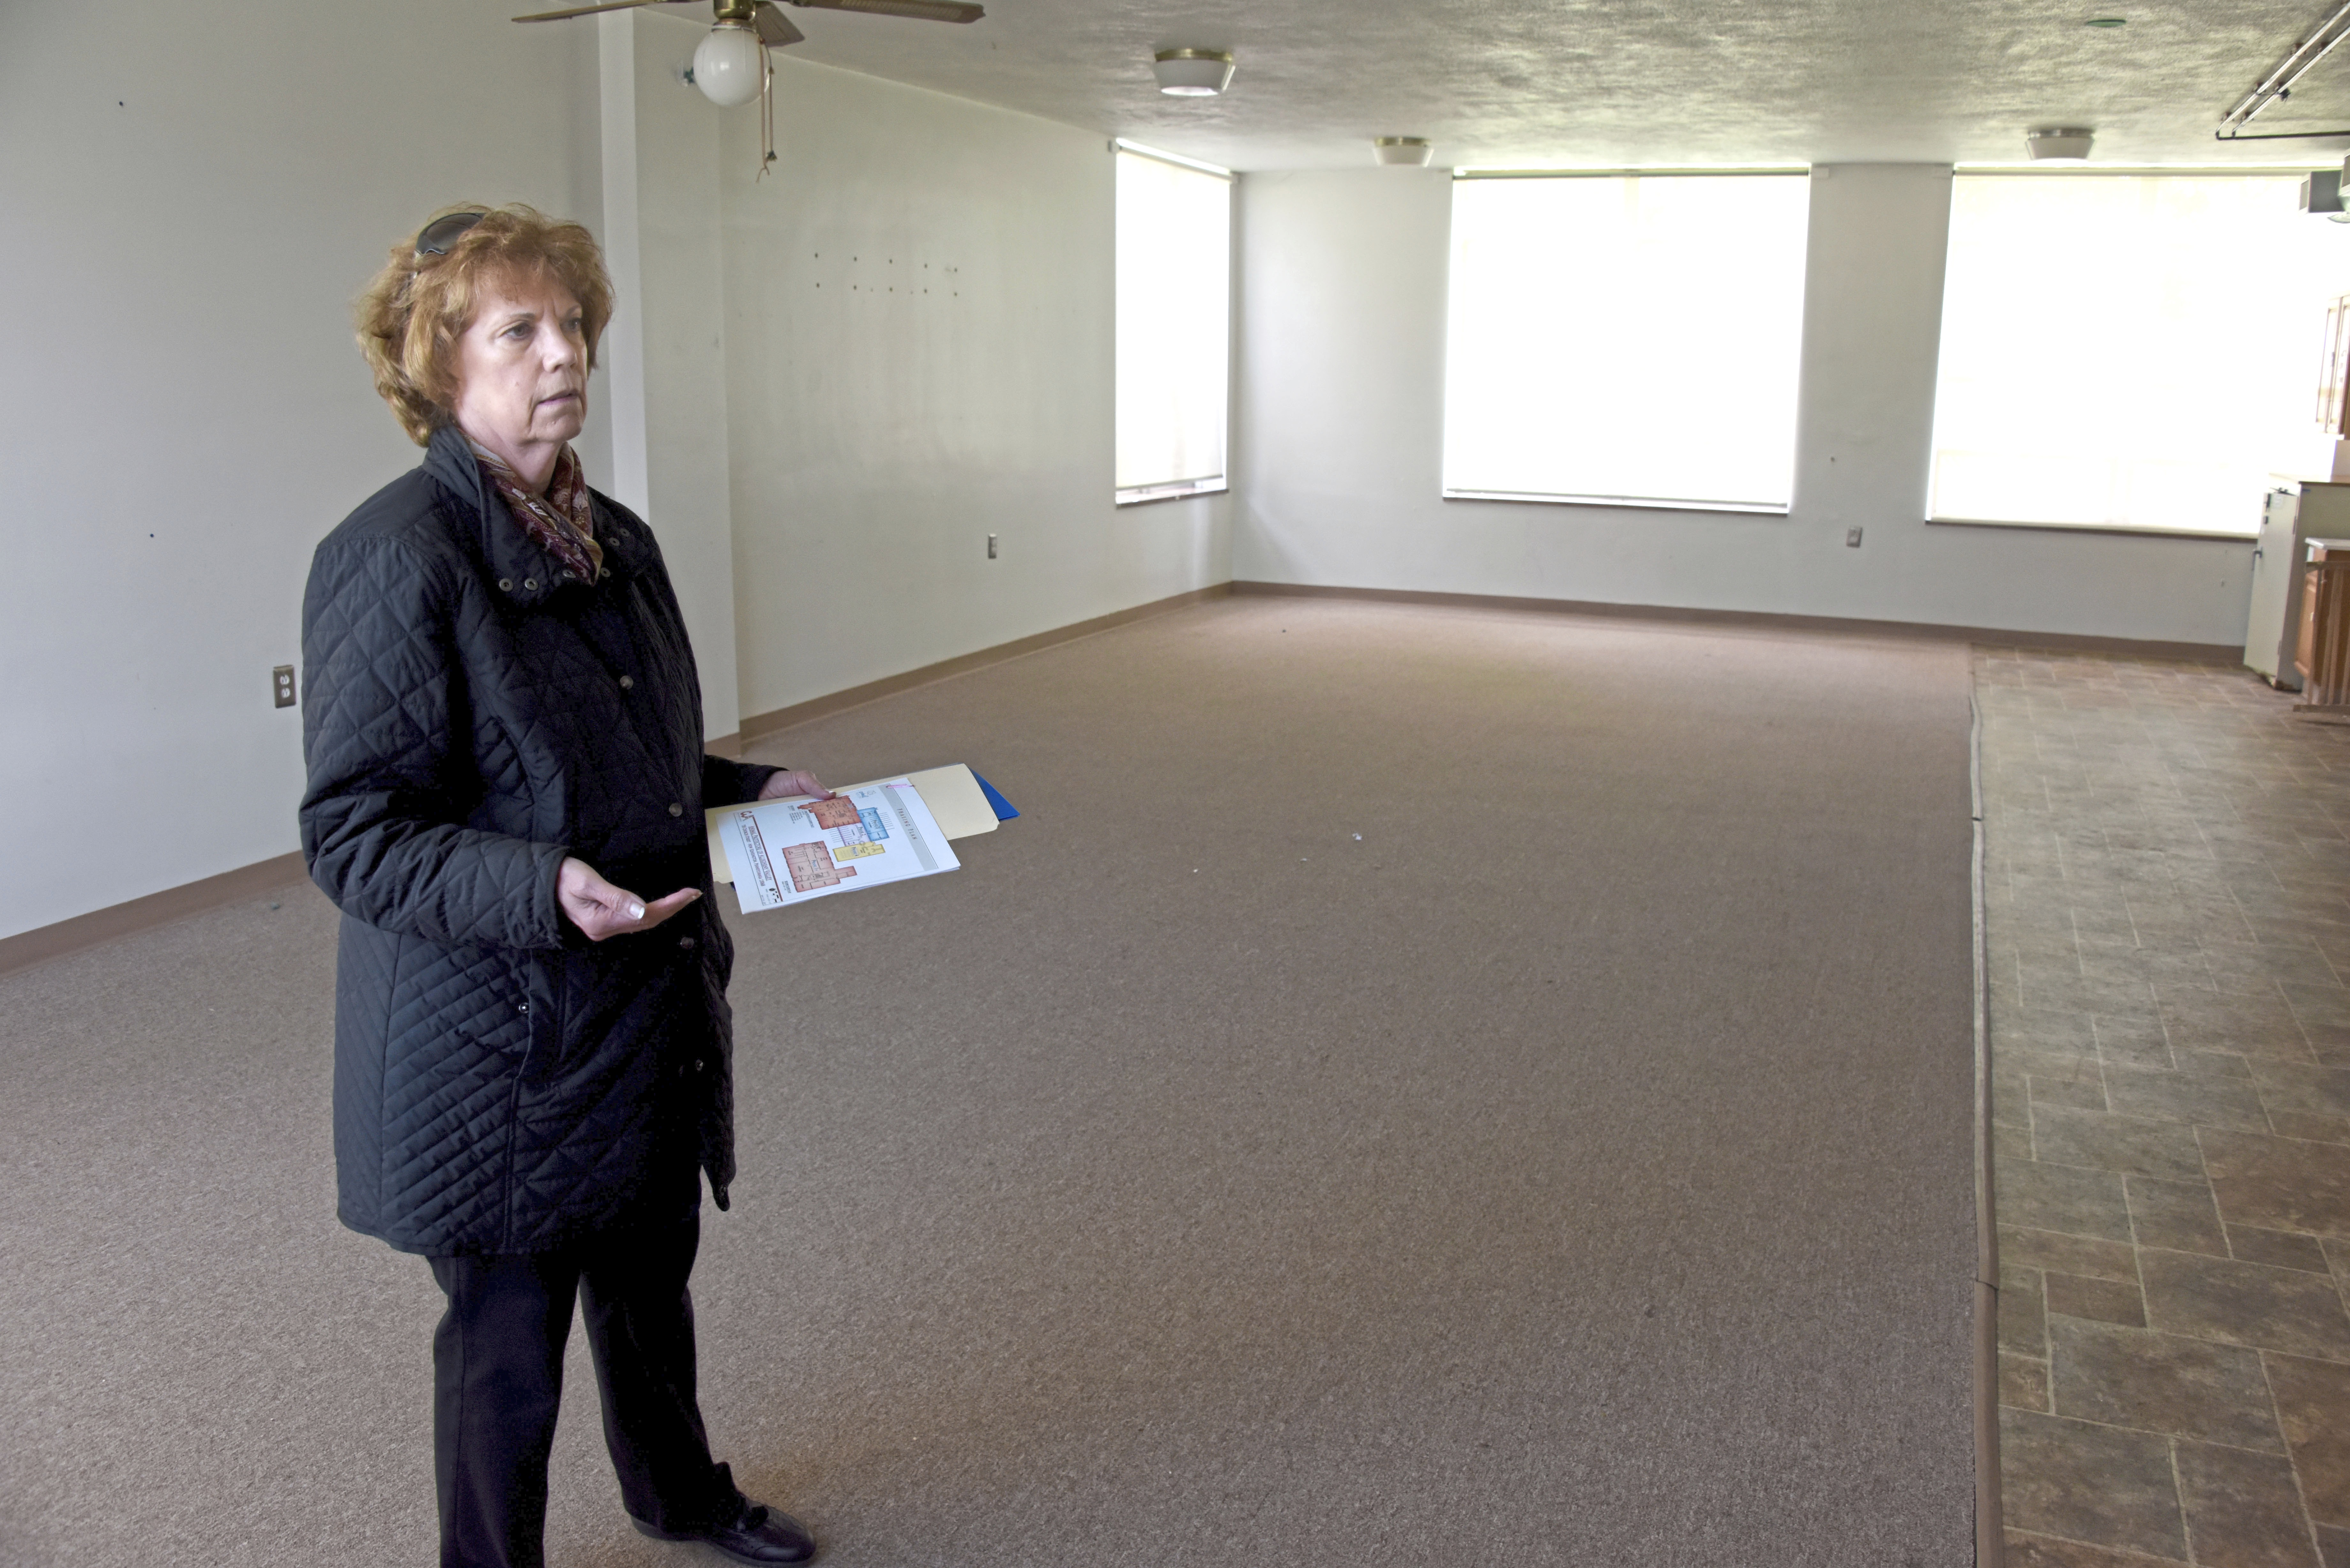 20171016dsPetTales1021Mag08-7 Phyllis Framel stands in a room at a closed elementary school that will be used as a kennel for the Animal Protectors Of Allegheny Valley's new shelter.